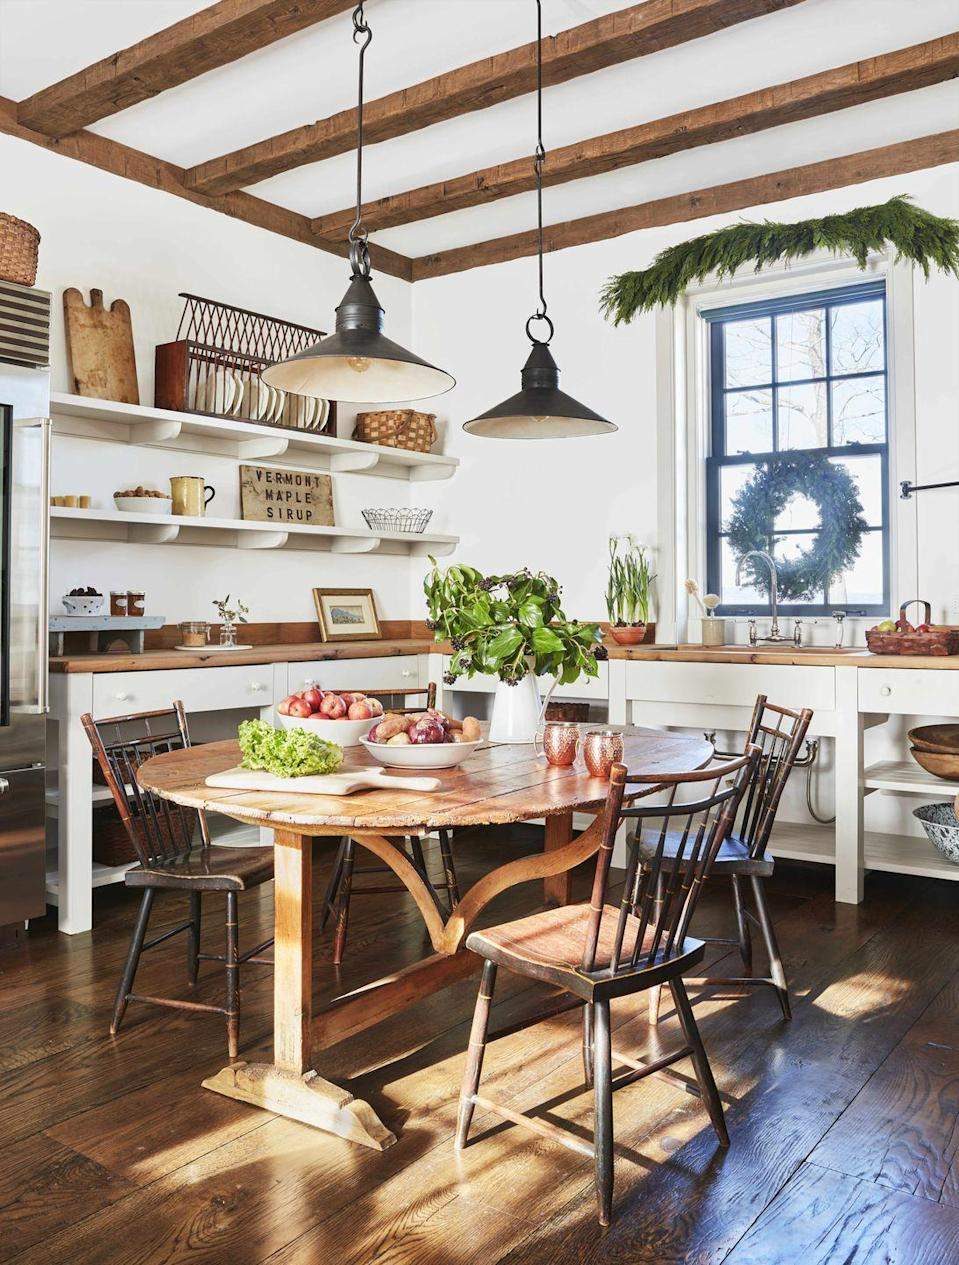 "<p>This <a href=""https://www.veranda.com/decorating-ideas/a29416530/gil-schafer-vermont-party-barn/"" rel=""nofollow noopener"" target=""_blank"" data-ylk=""slk:antiques-filled party barn"" class=""link rapid-noclick-resp"">antiques-filled party barn</a> designed by <a href=""https://gpschafer.com/"" rel=""nofollow noopener"" target=""_blank"" data-ylk=""slk:Gil Schafer"" class=""link rapid-noclick-resp"">Gil Schafer</a> is delicately lit with Edison-style pendants from <a href=""https://hmwpa.com/scofield-lighting/"" rel=""nofollow noopener"" target=""_blank"" data-ylk=""slk:Scofield Lighting"" class=""link rapid-noclick-resp"">Scofield Lighting</a>. It's the perfect option for a well-collected farmhouse kitchen, looking like another find from the owner's travels or local treasure hunts. </p>"